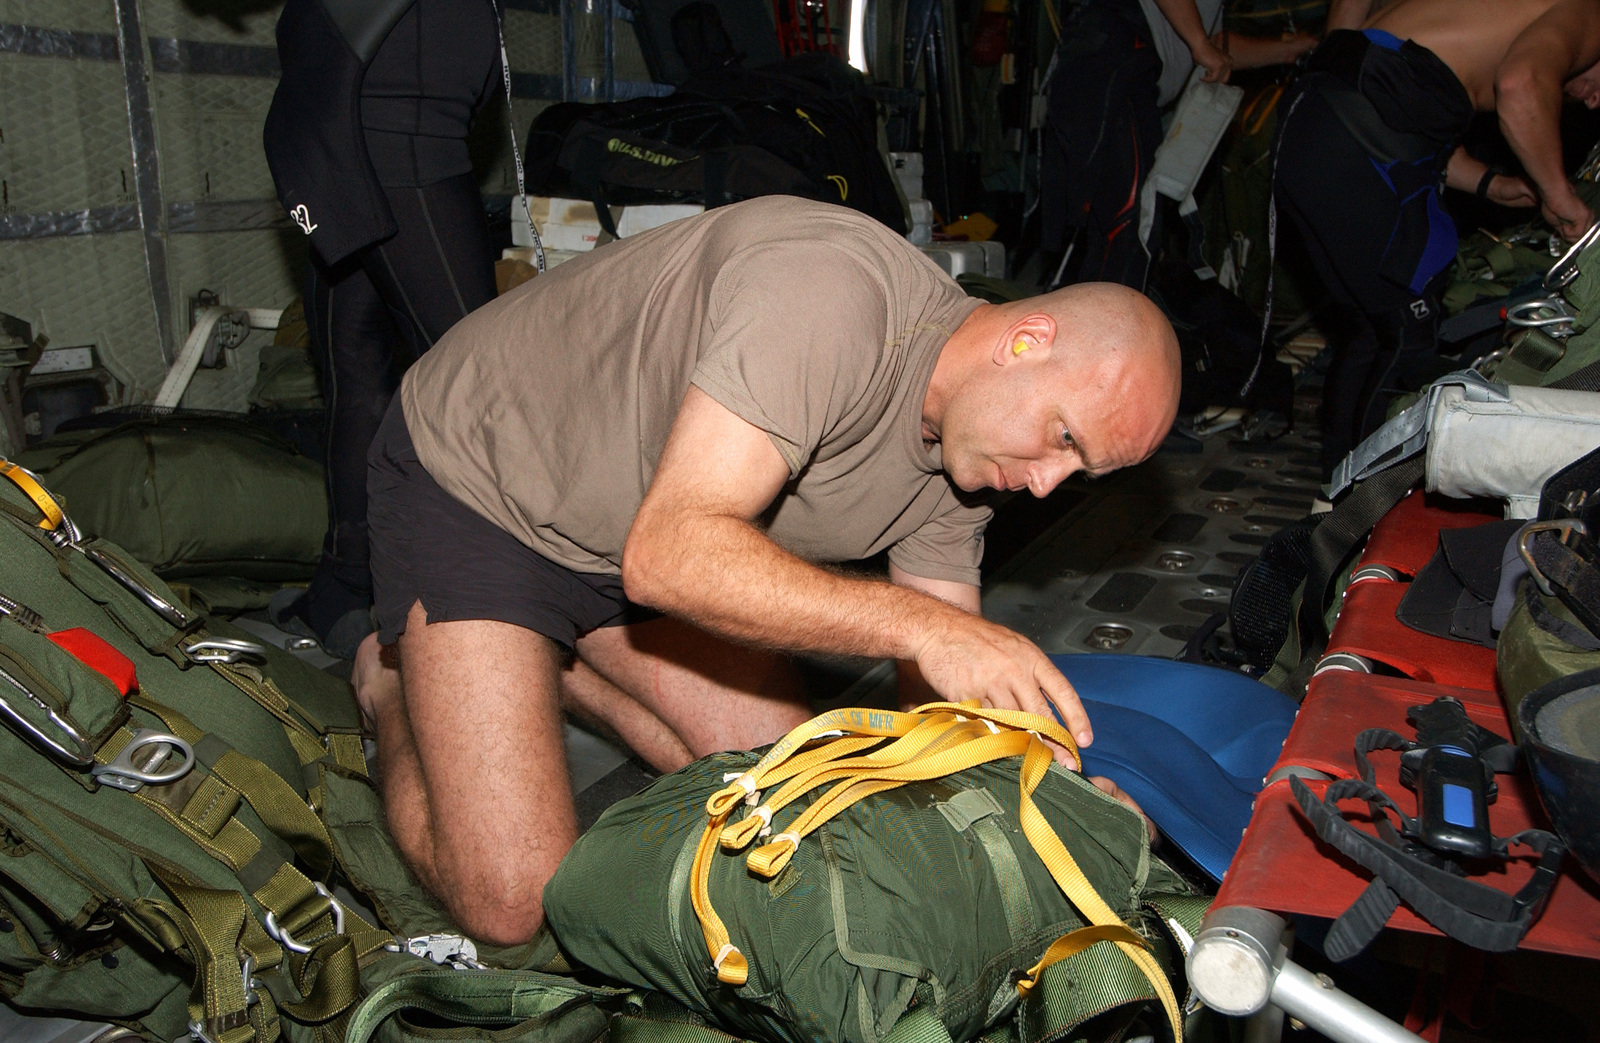 A US Air Force (USAF) 38th Rescue Squadron (RQS), 347th Rescue Wing (RW), Pararescueman, from Moody Air Force Base (AFB), Georgia (GA), prepares his gear while his Pararescue Team flies onboard a USAF C-130 Hercules cargo aircraft to provide medical support to a Chinese fisherman, aboard the fishing vessel the YUH PAO, who is suffering from a serious chest injury. Other team members are working in the background preparing the Rigging Alternate Method Zodiac (RAMZ) boat that will be dropped to deliver the pararescuemen to the YUH PAO